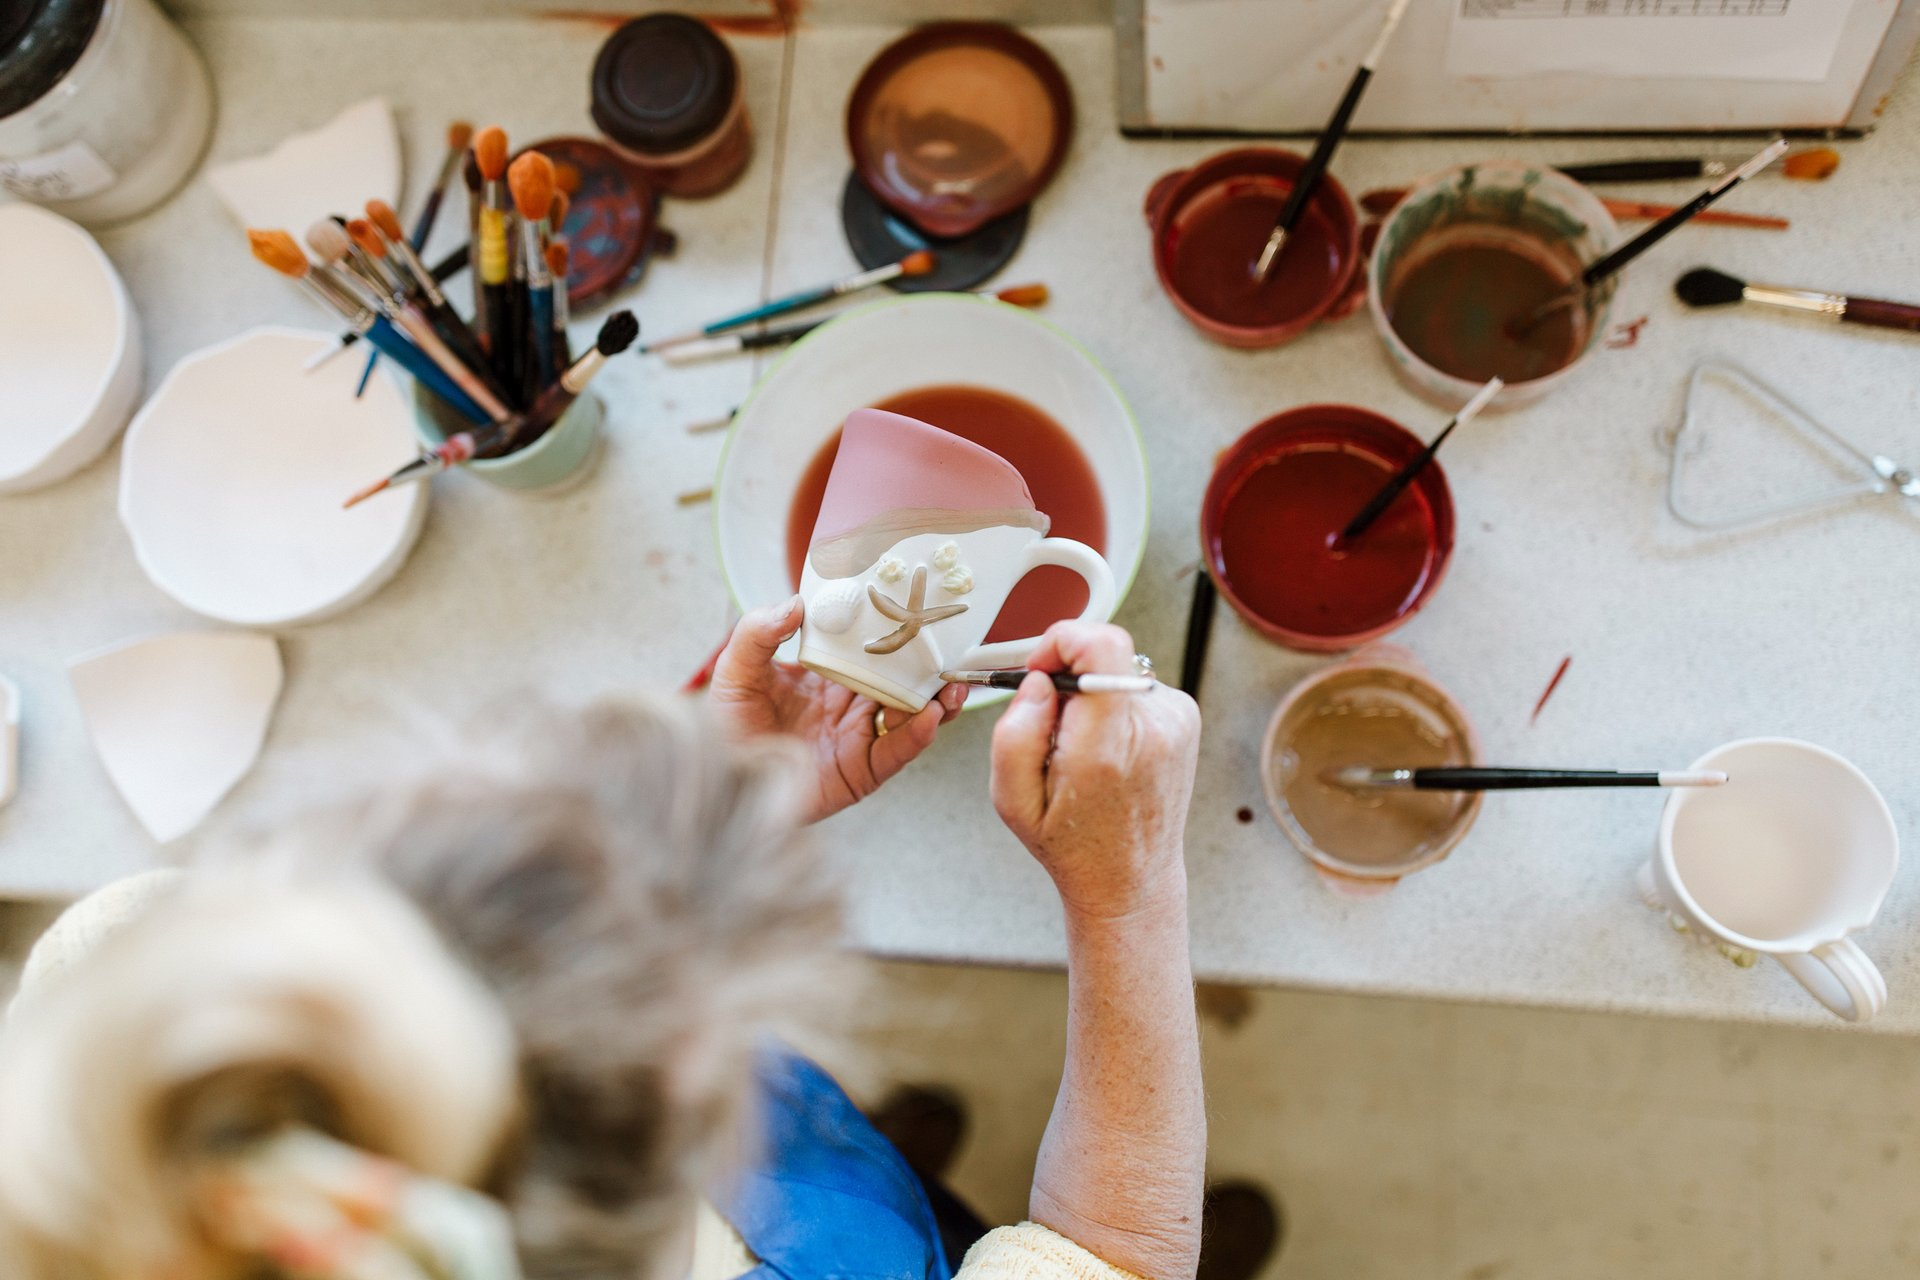 Photo by Bluetree Photography taken at Mussels and More Pottery